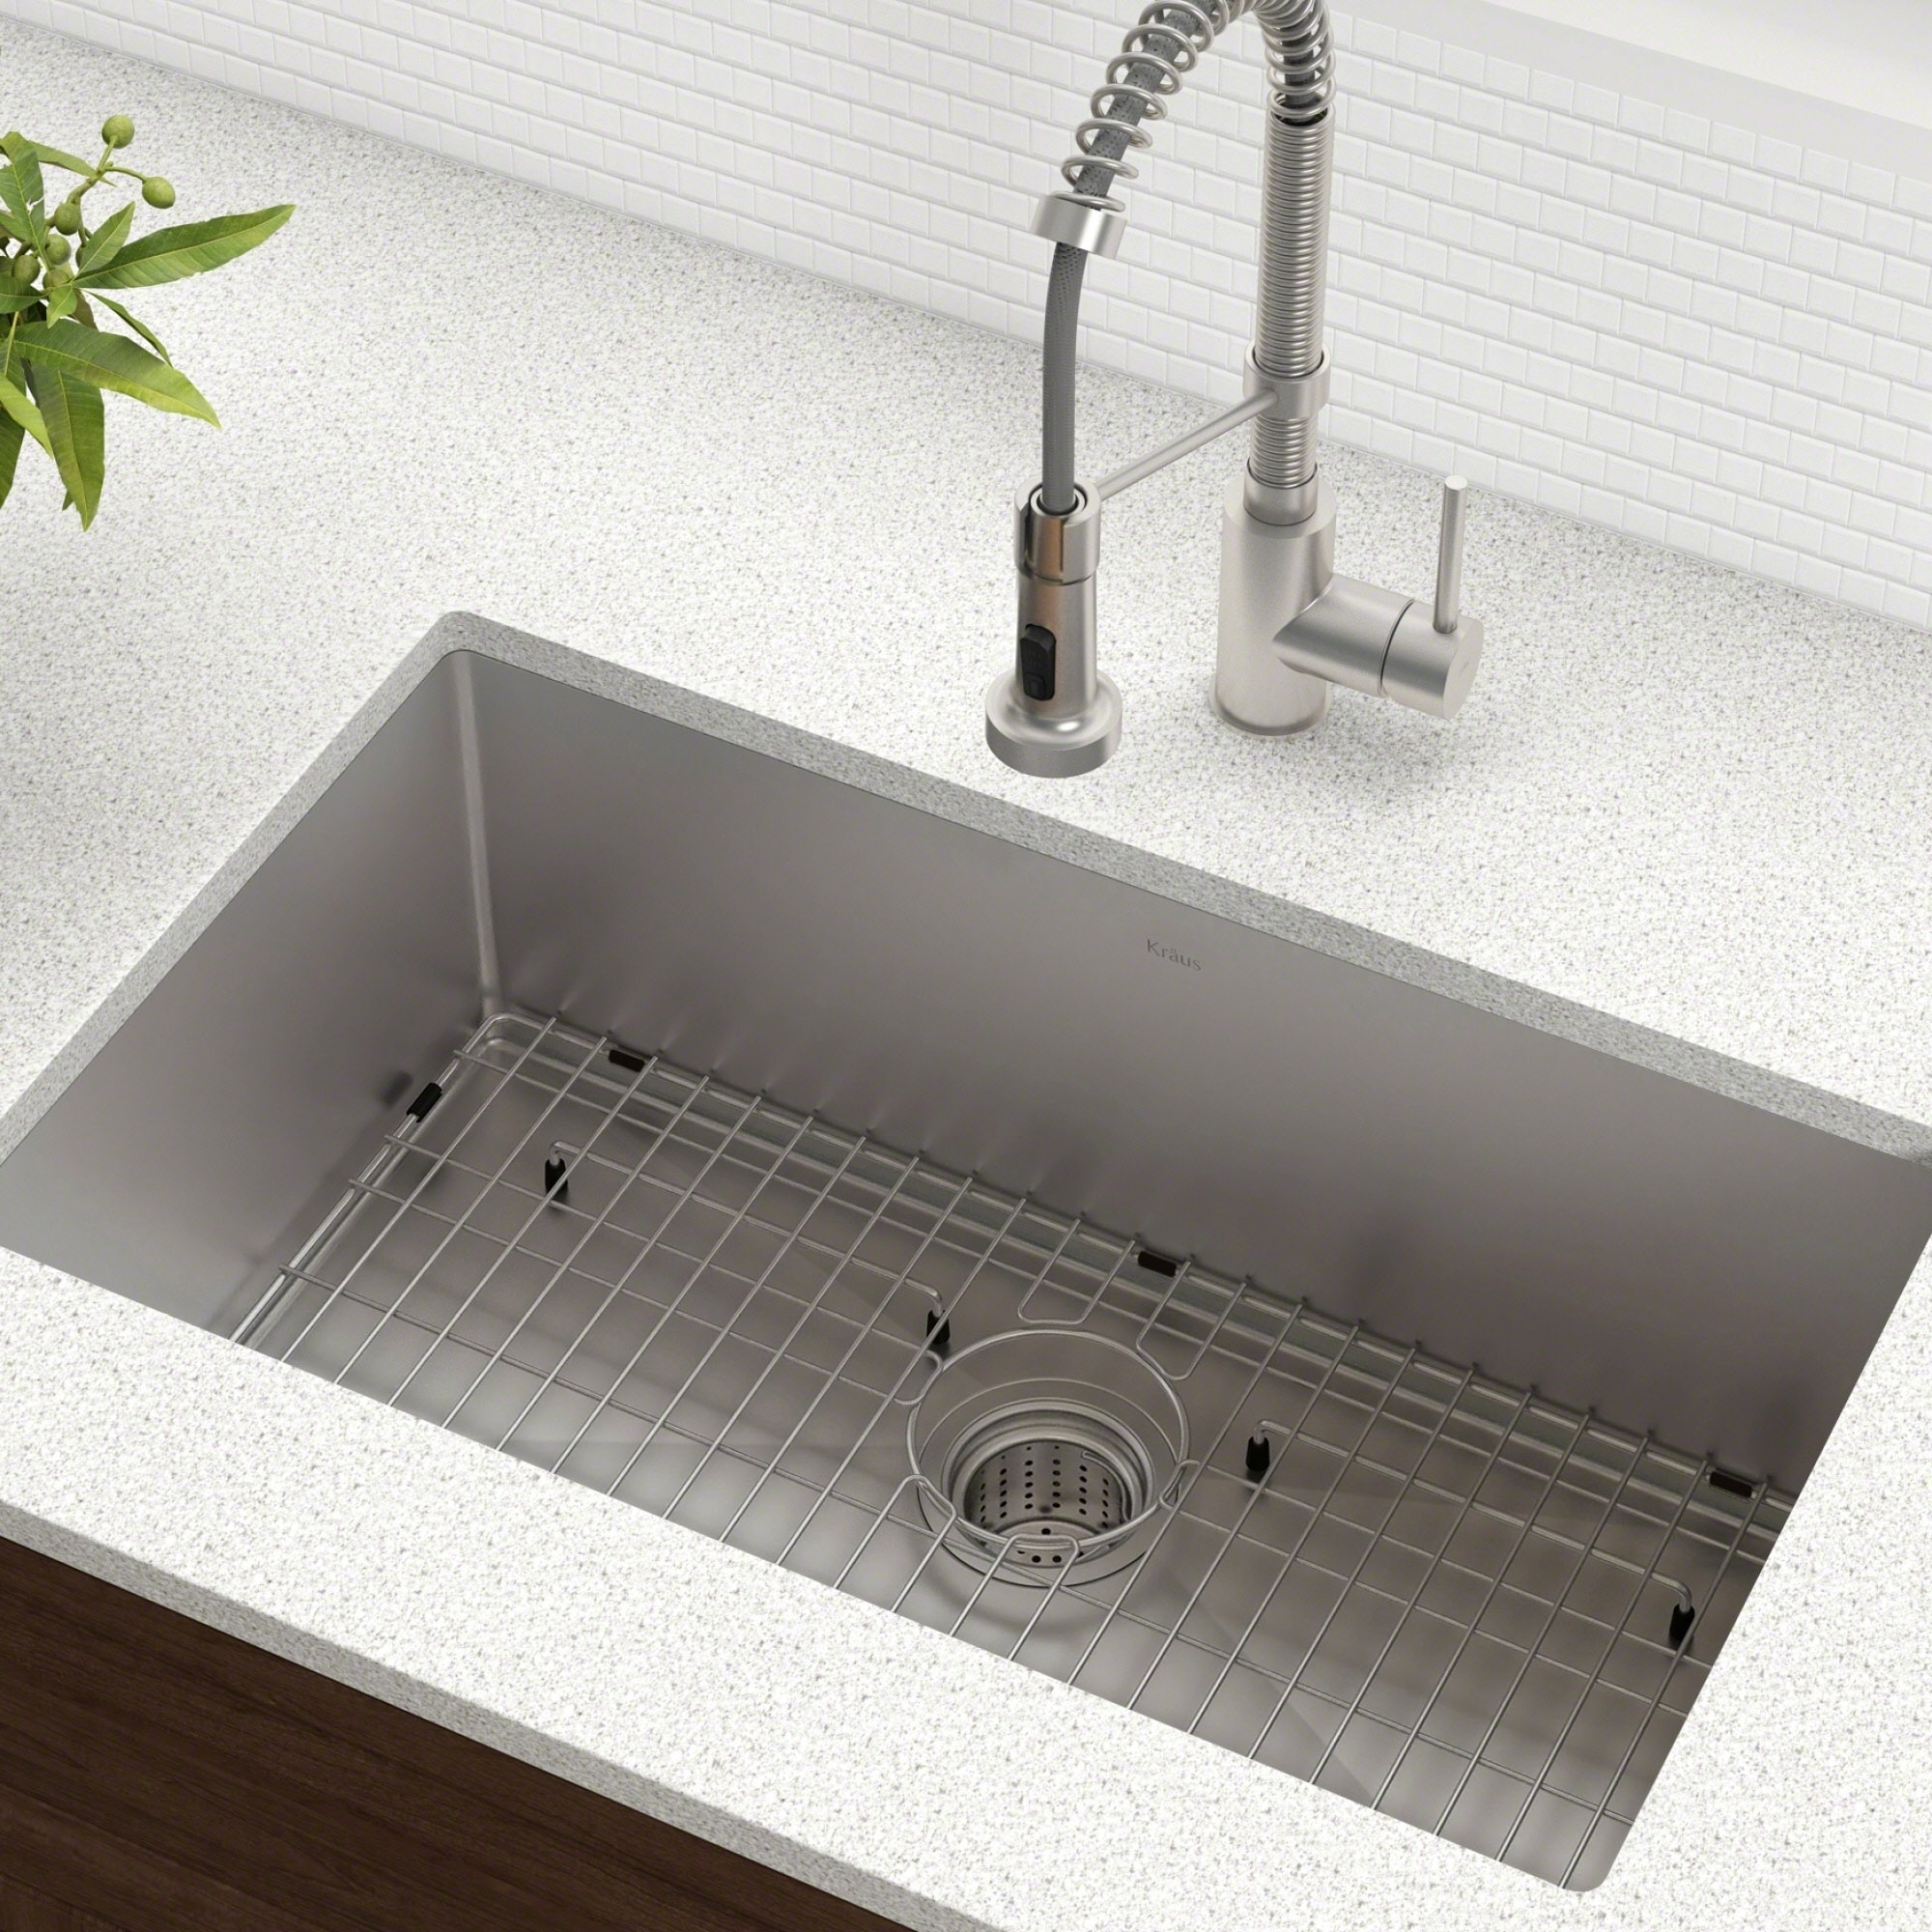 Kraus 30 inch undermount single bowl 16 gauge stainless steel kraus 30 inch undermount single bowl 16 gauge stainless steel kitchen sink with noisedefend soundproofing free shipping today overstock 11477701 workwithnaturefo